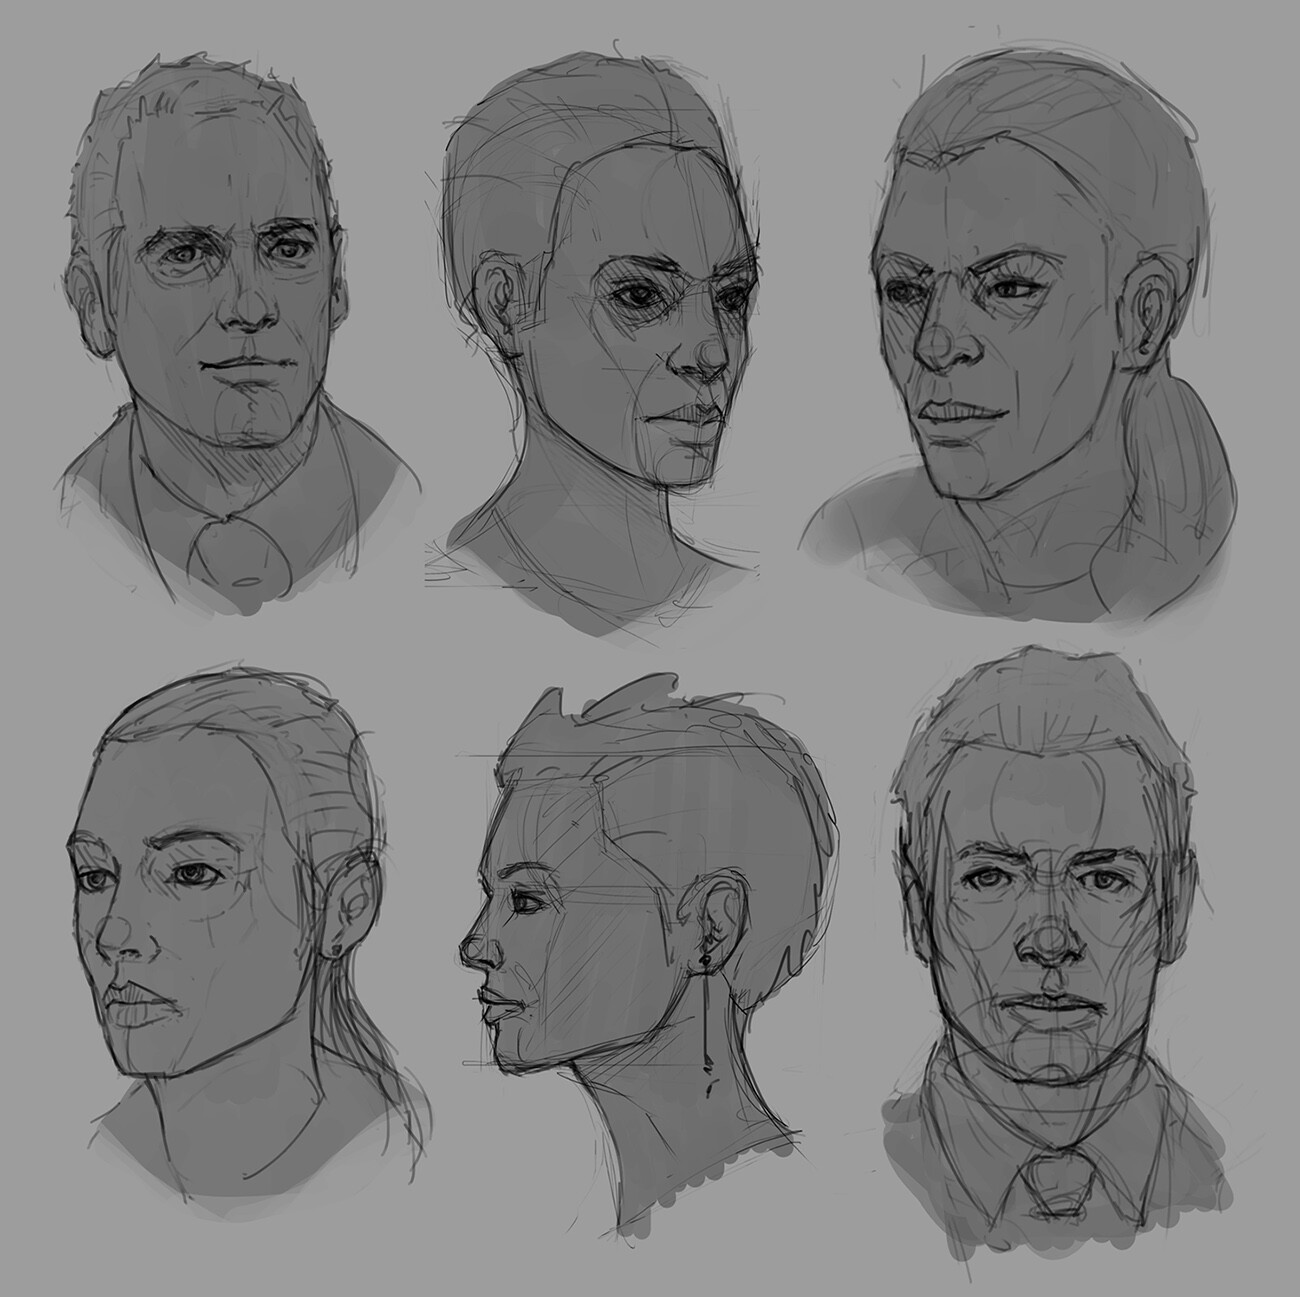 A few head sketches, trying to understand the 3D forms.